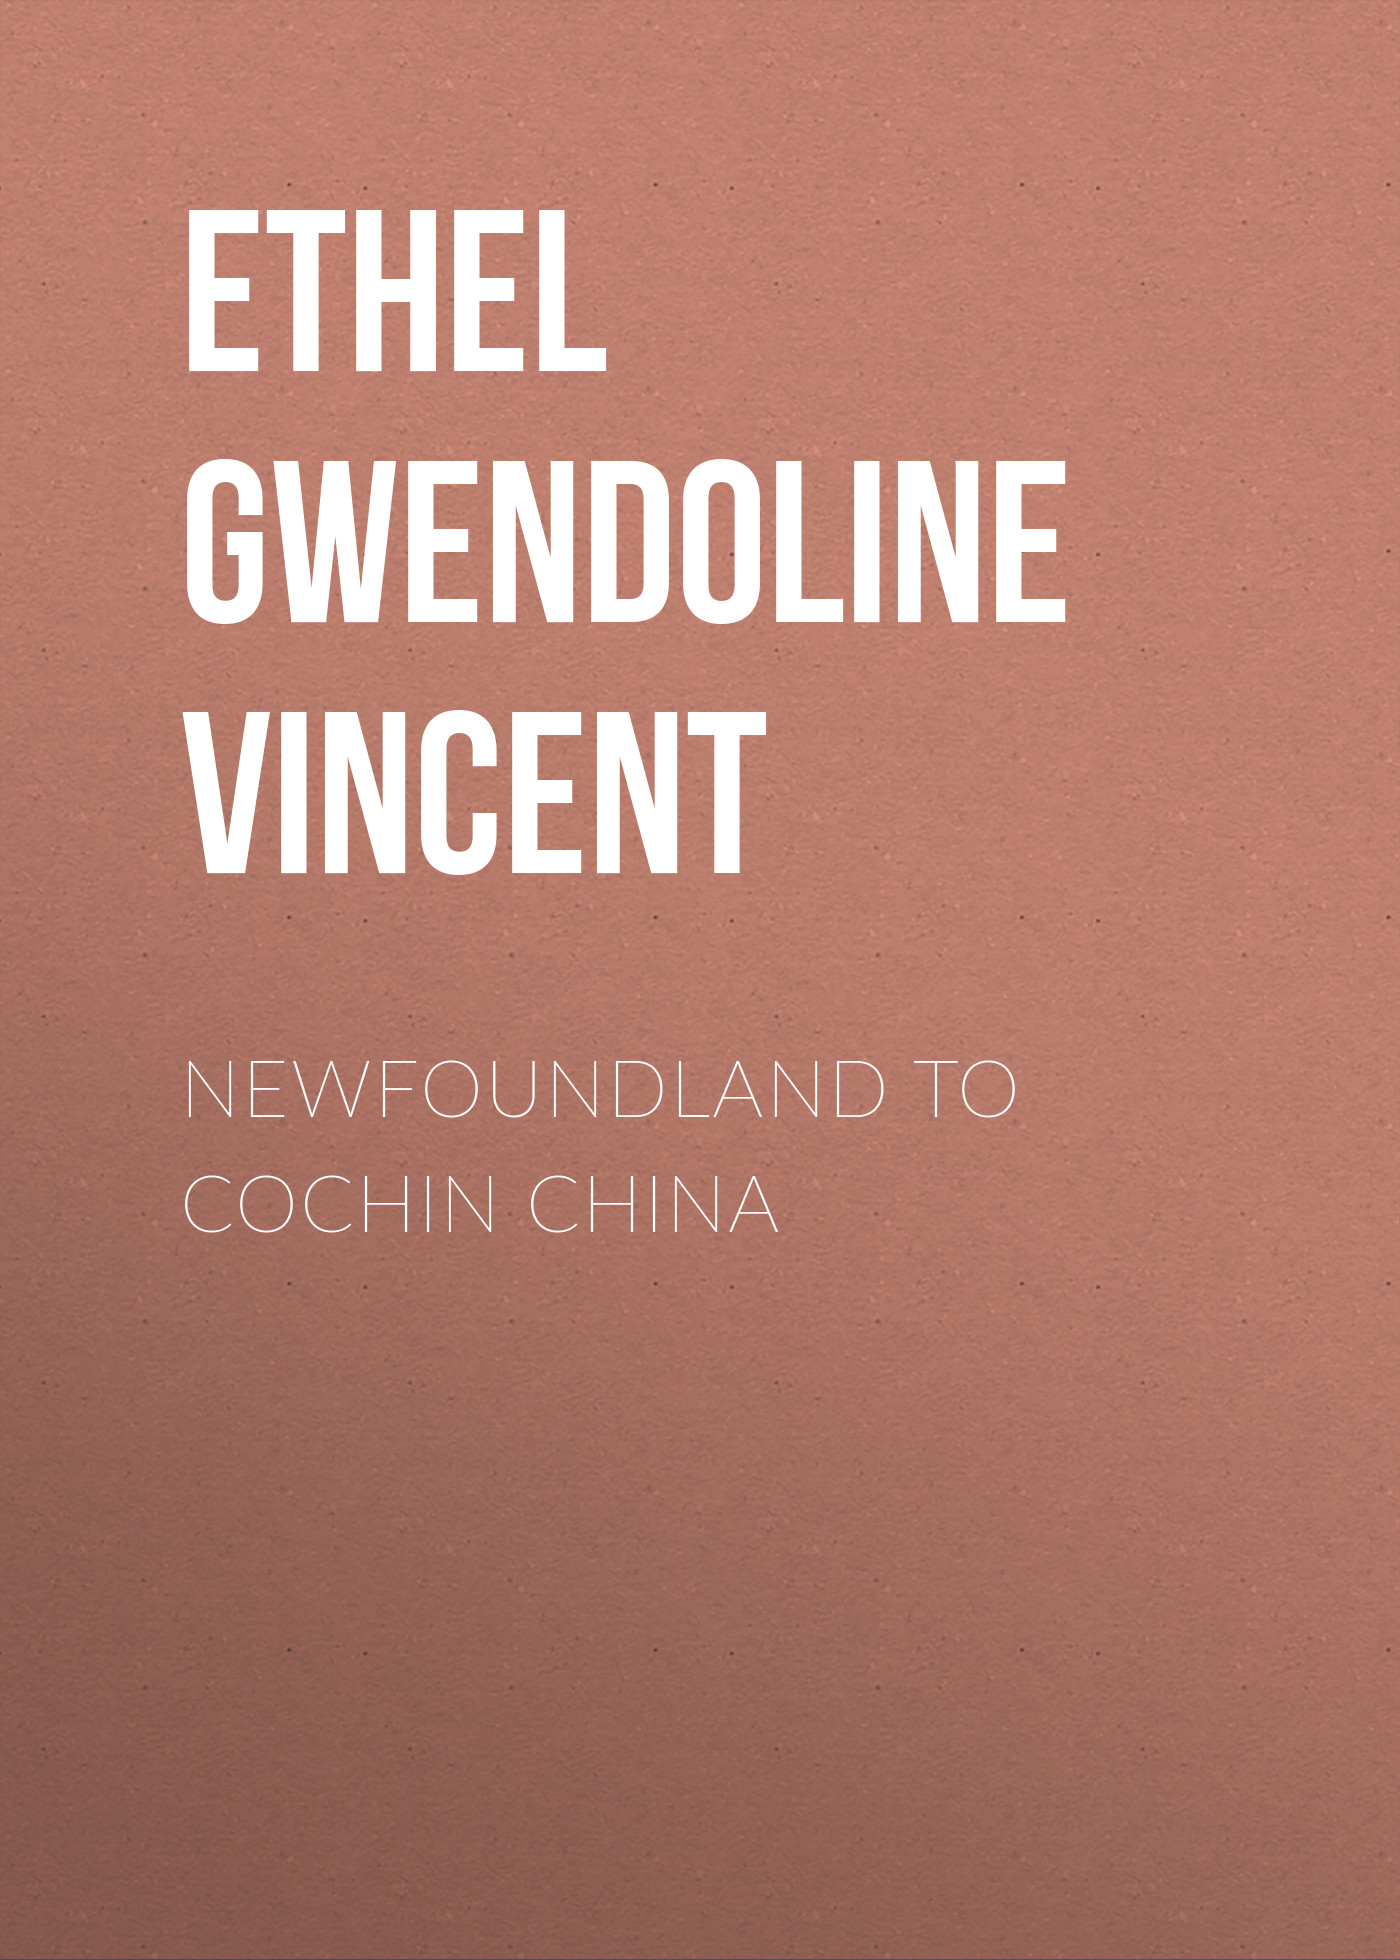 Ethel Gwendoline Vincent Newfoundland to Cochin China